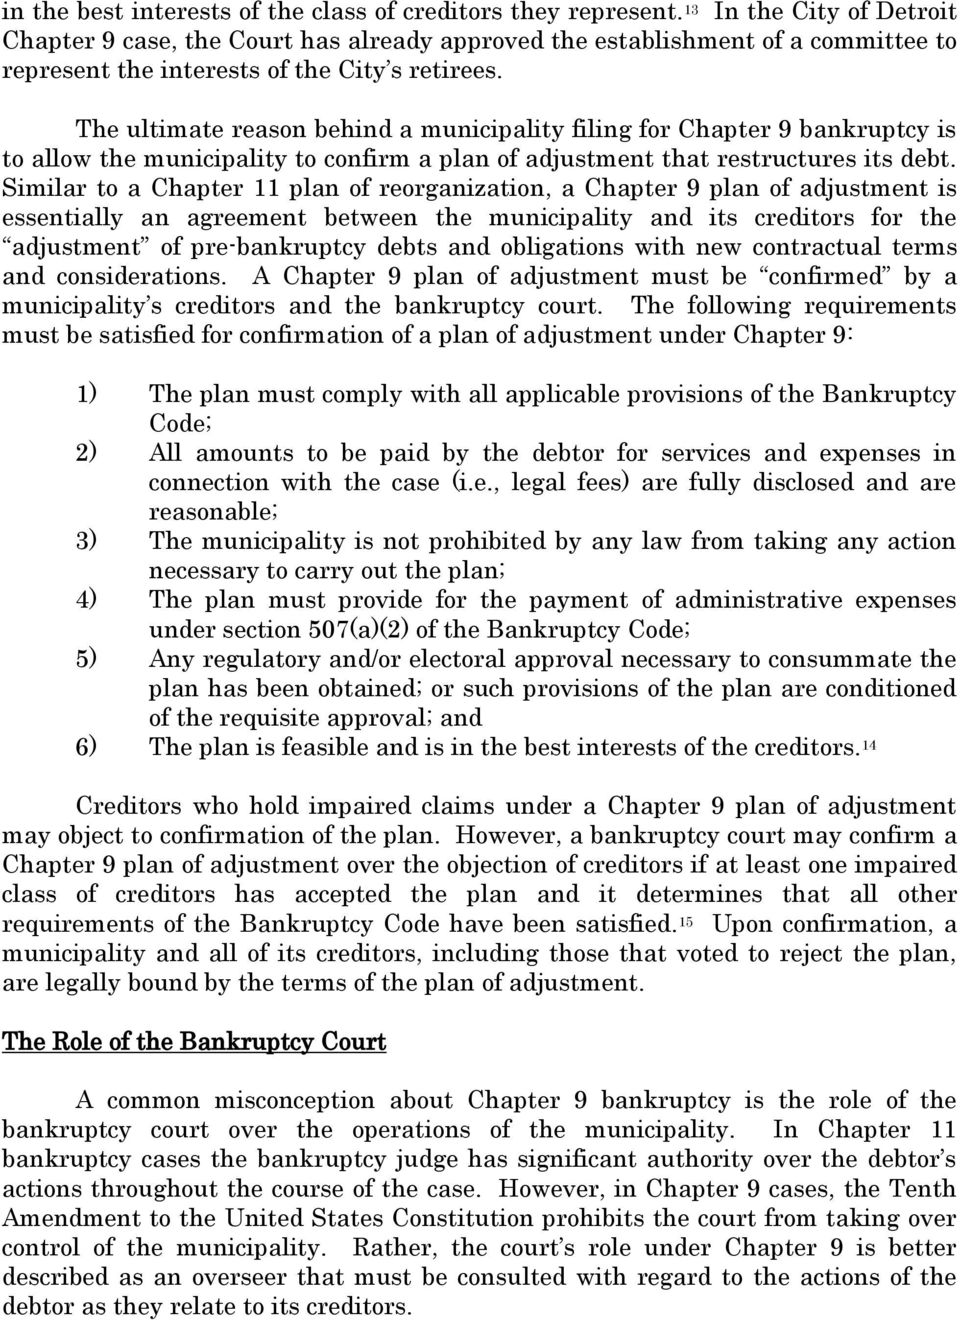 The ultimate reason behind a municipality filing for Chapter 9 bankruptcy is to allow the municipality to confirm a plan of adjustment that restructures its debt.